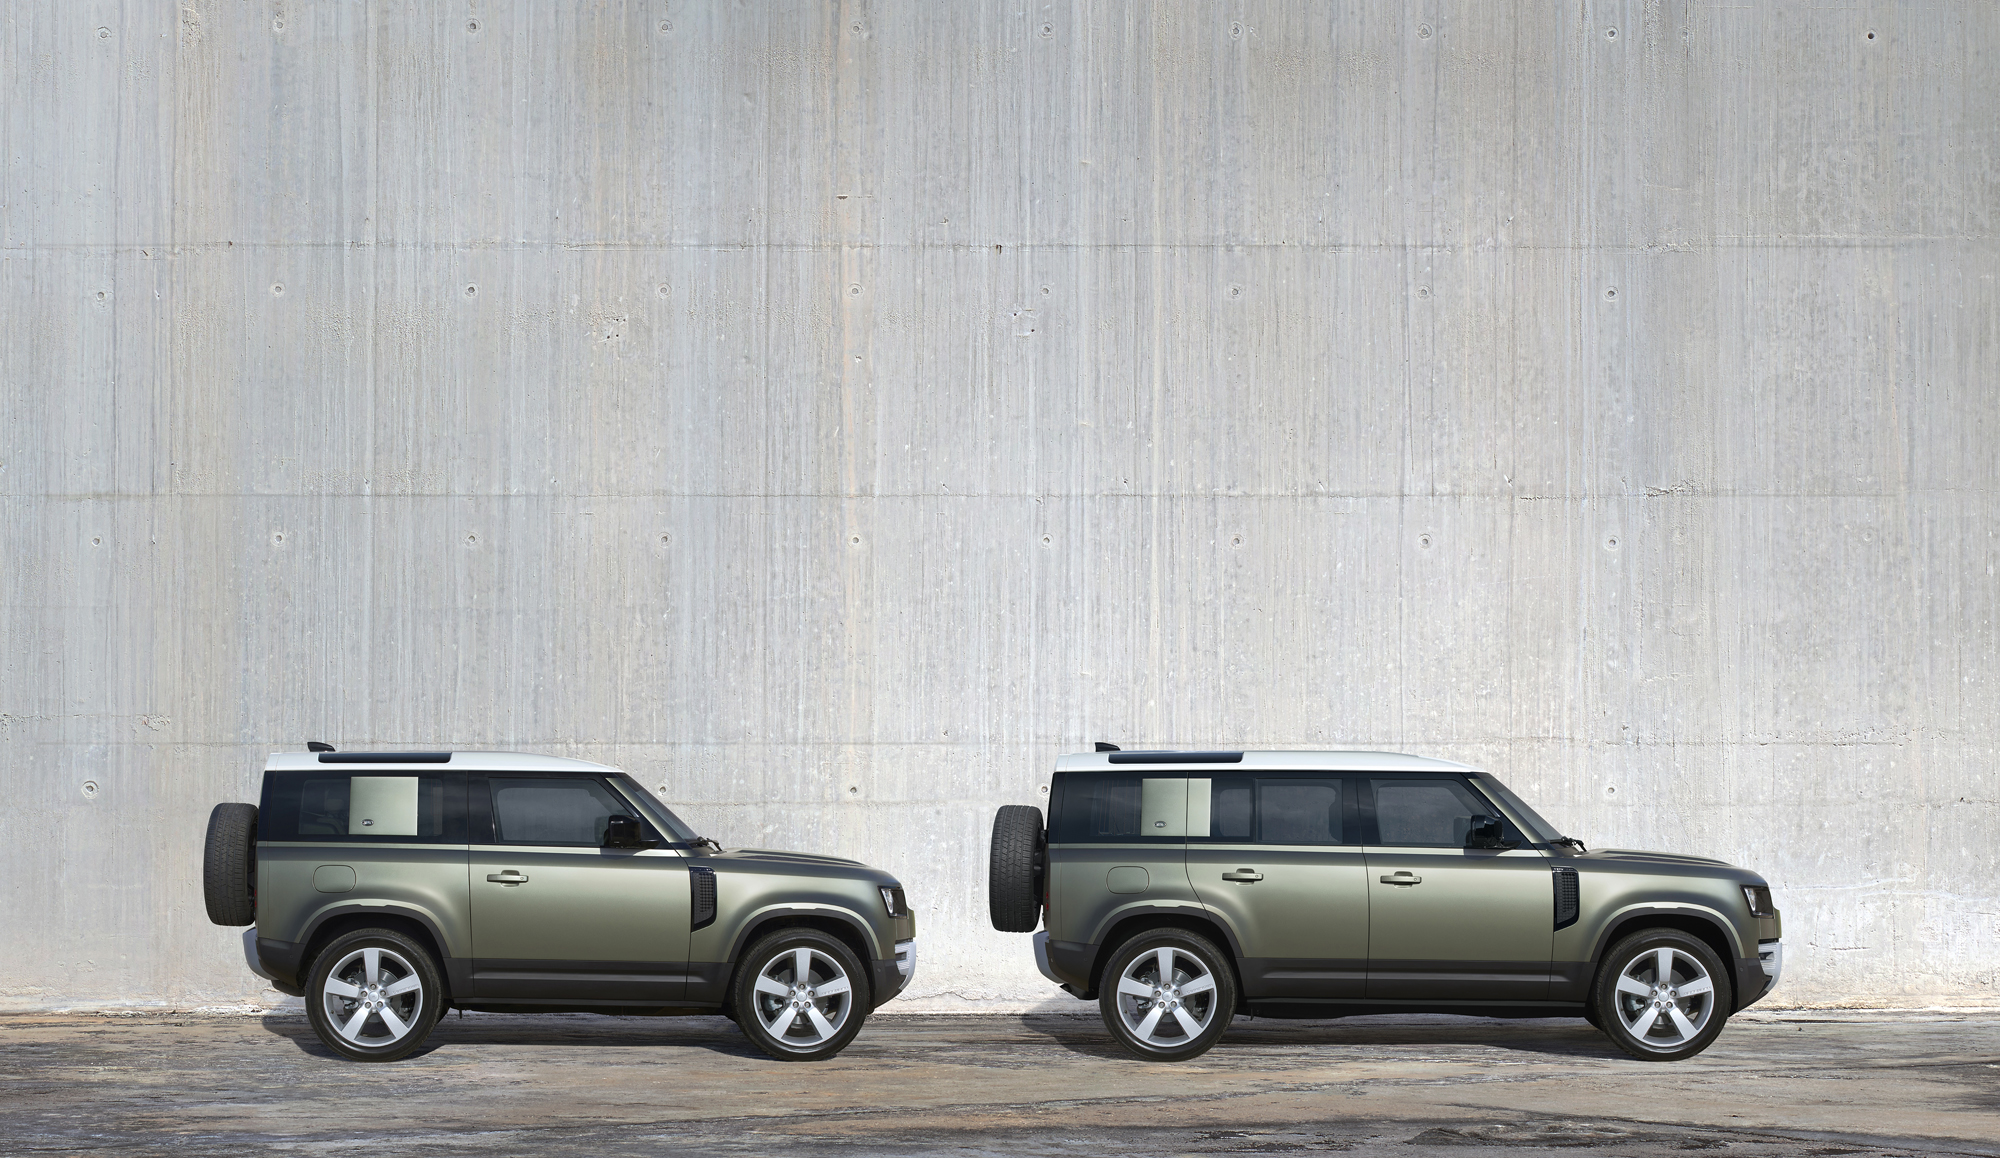 Land rover unveils new defender image 1.jpg (3.61 MB)